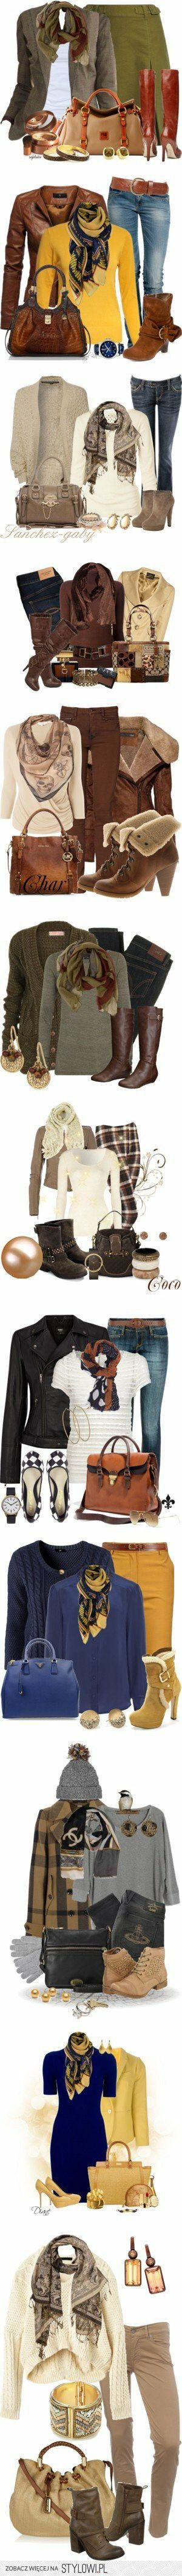 Find More at => http://feedproxy.google.com/~r/amazingoutfits/~3/N_283gIA5Lg/AmazingOutfits.page